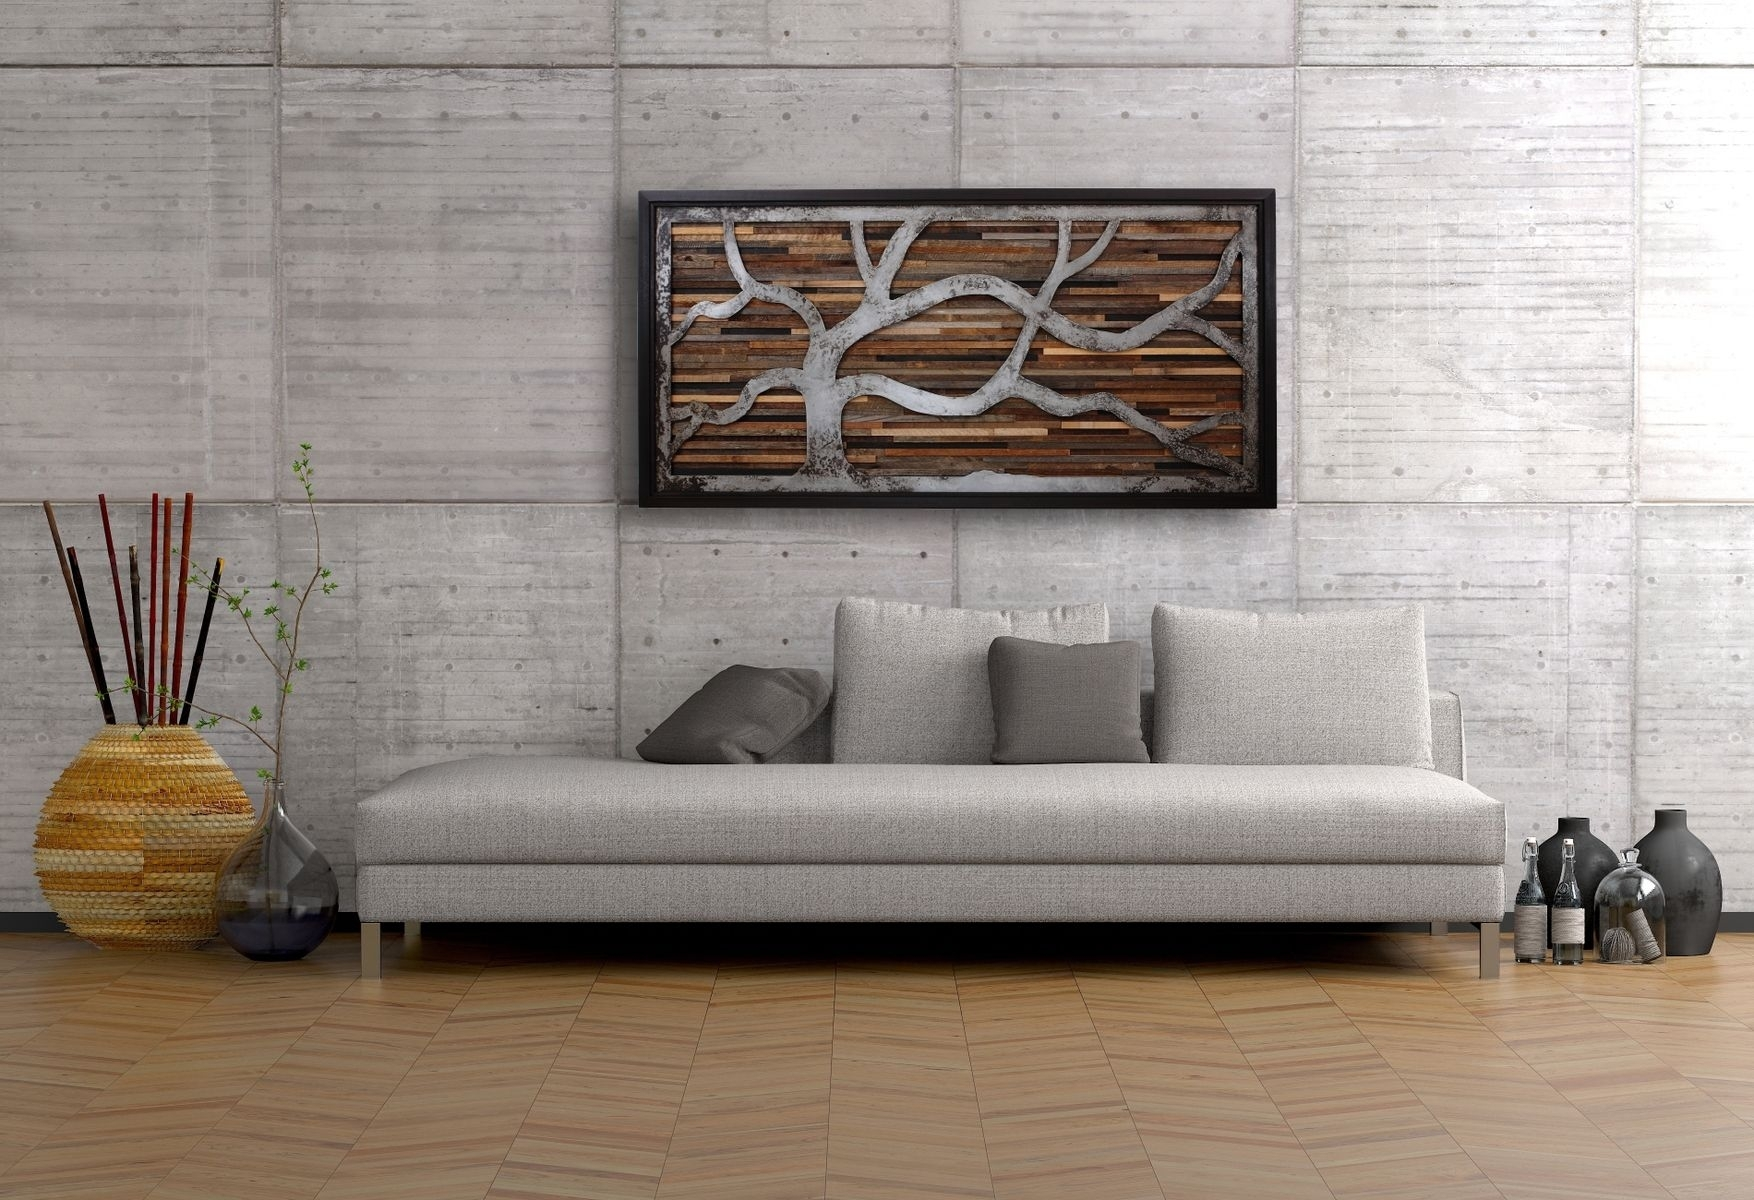 Handmade Reclaimed Wood Wall Art Made Of Old Barnwood And Rustic With Best And Newest Reclaimed Wood Wall Accents (View 6 of 15)